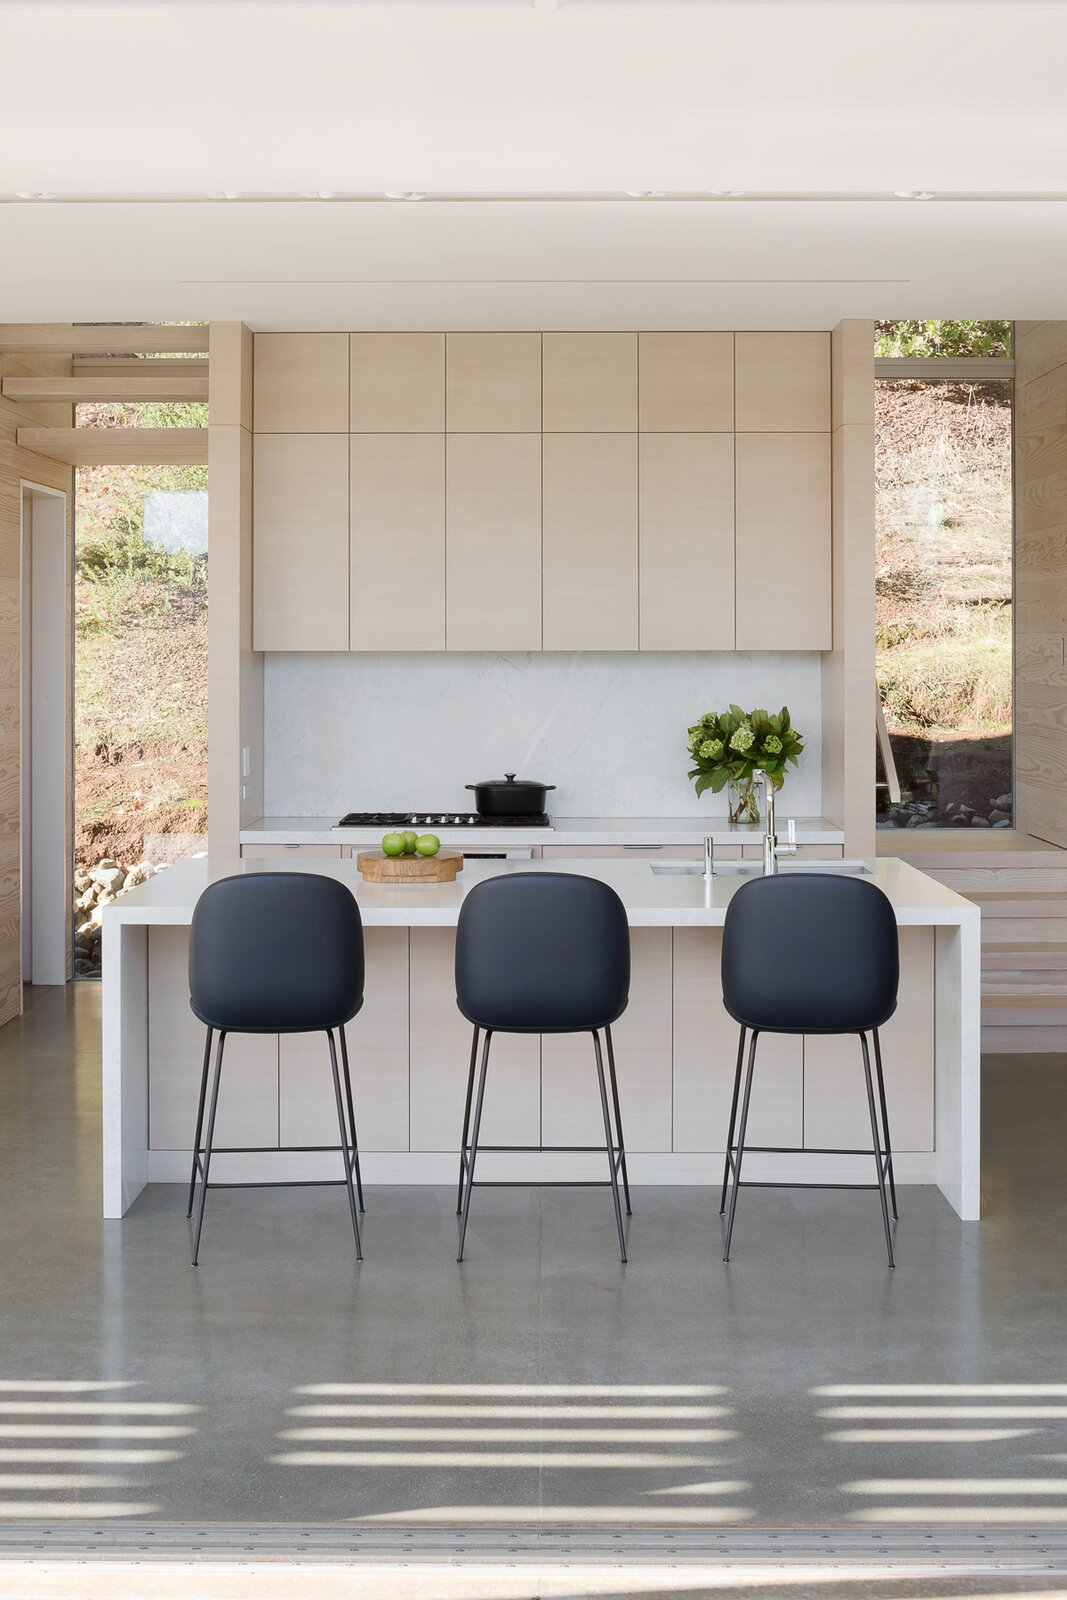 Kitchen, Wood Cabinet, and Concrete Floor  Photo 5 of 11 in A Minimalist House Stands Out in a Wild Landscape from Sunrise